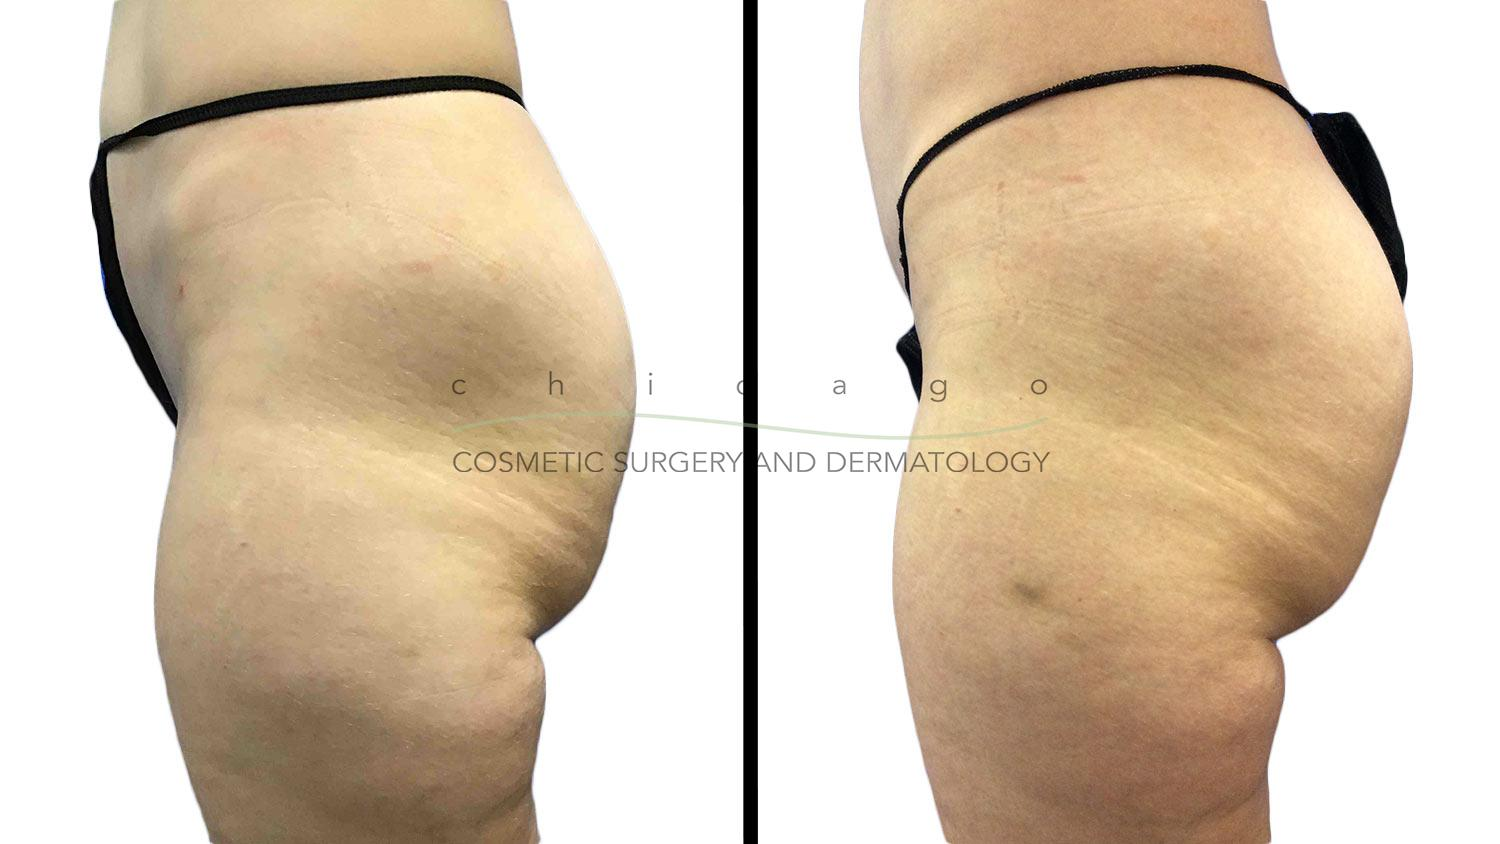 Emsculpt - Chicago Cosmetic Surgery and Dermatology